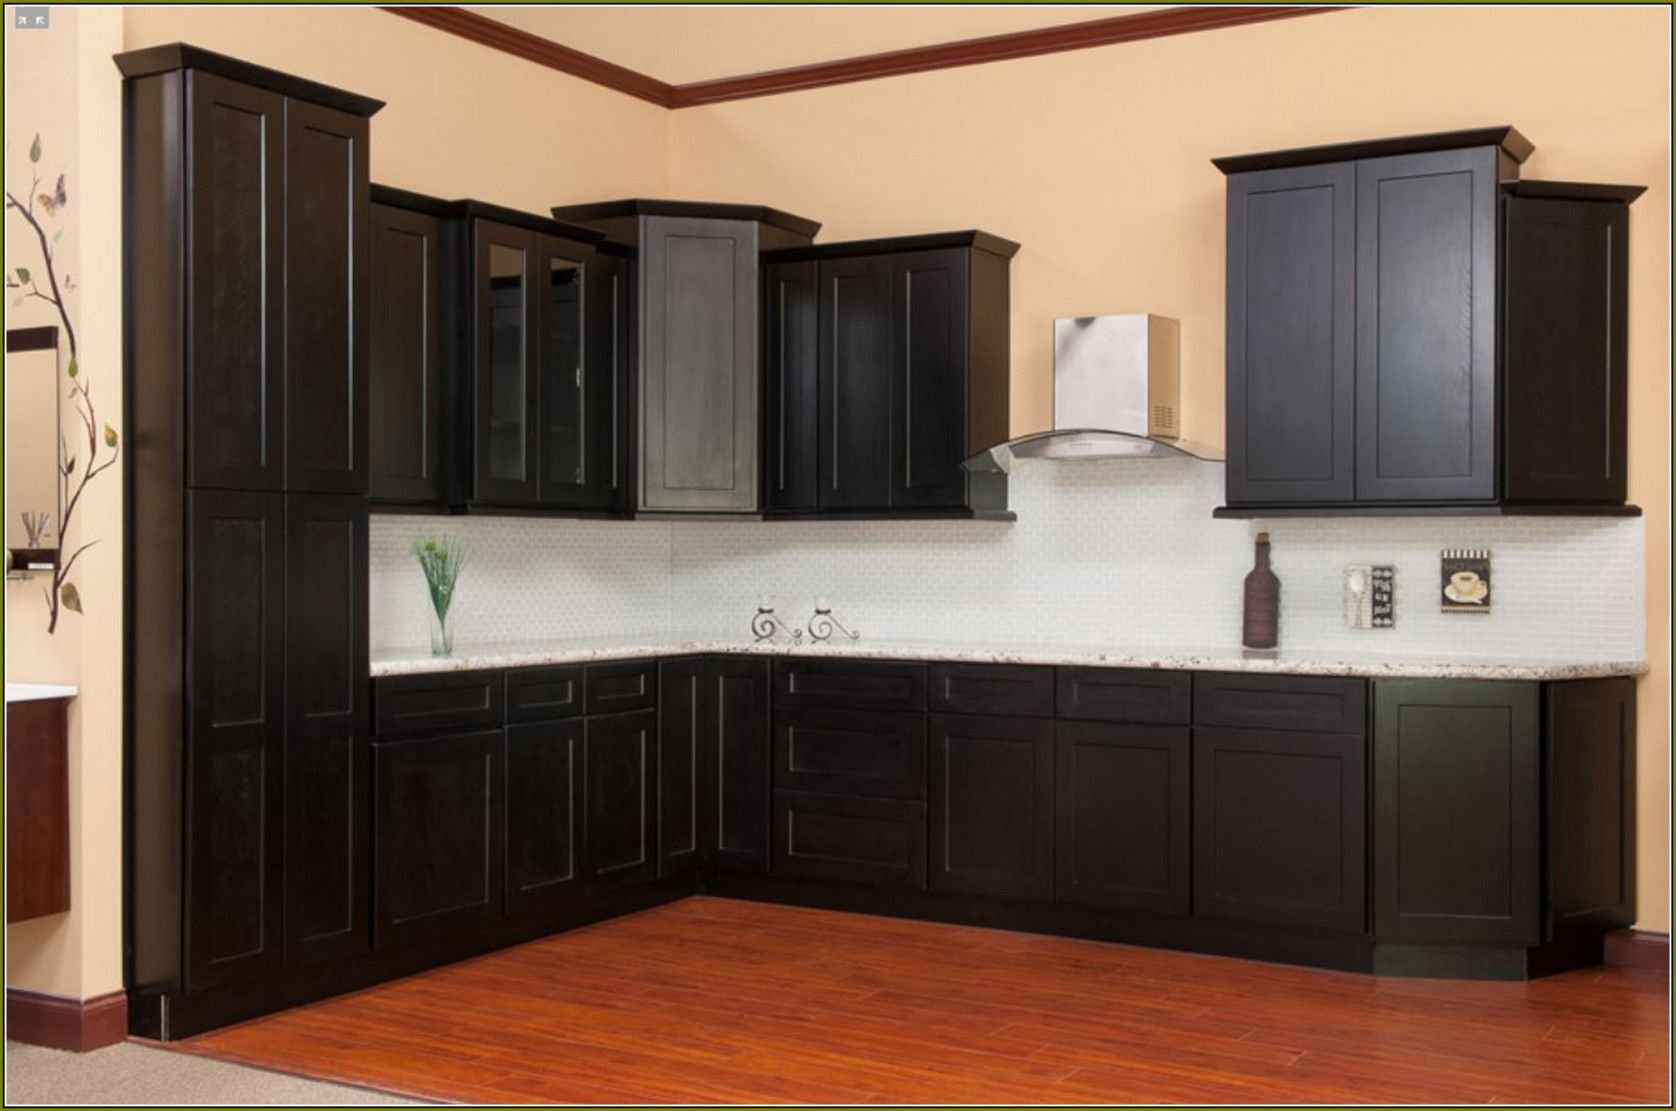 Charmant 99+ Ready To Assemble Unfinished Cabinets   Remodeling Ideas For Kitchens  Check More At Http